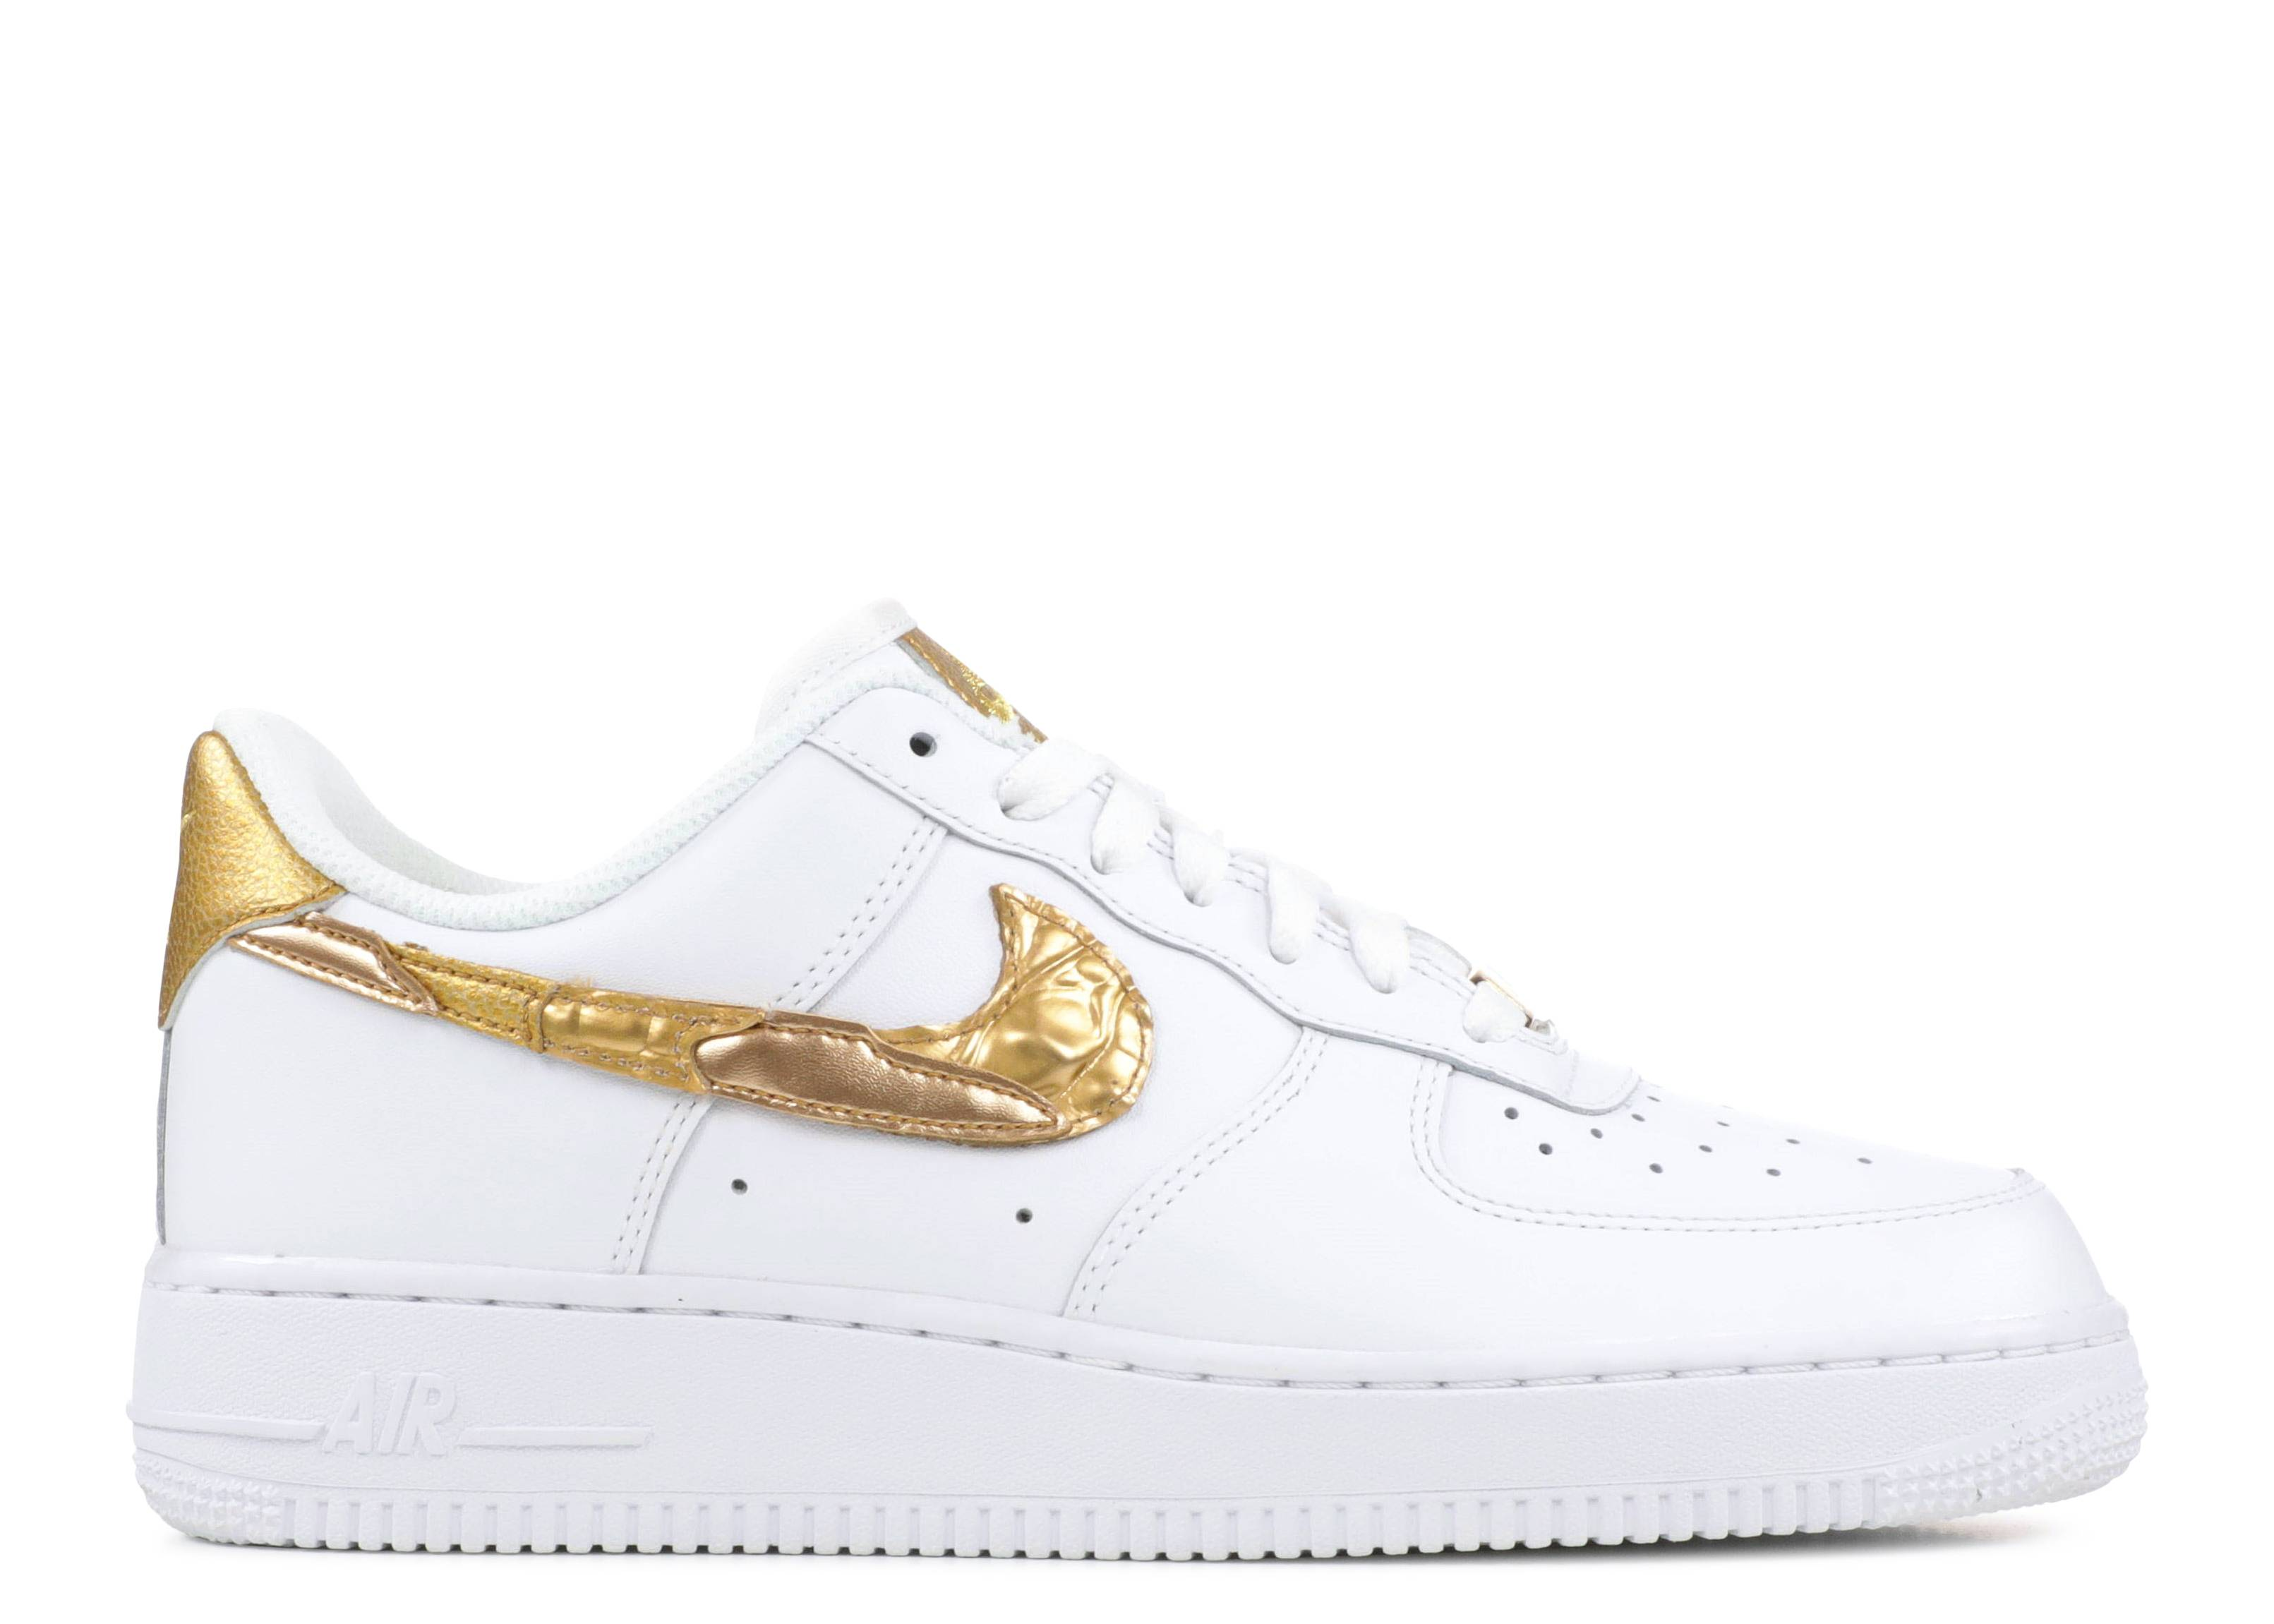 "CR7 x Air Force 1 Low 'Golden Patchwork' ""Golden Patchwork"""